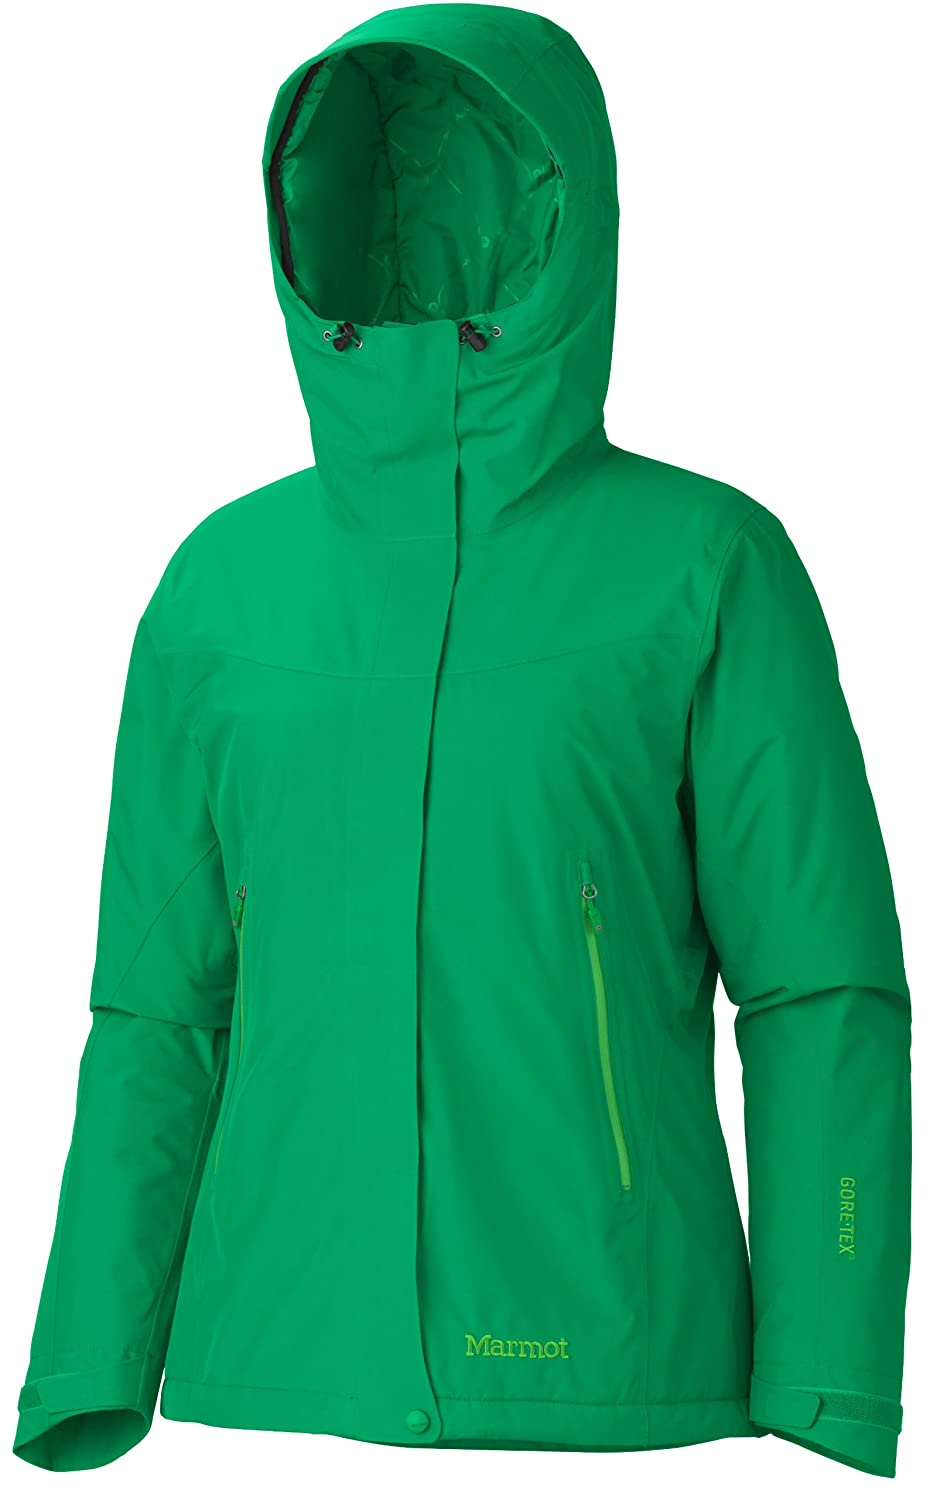 Marmot Damen 2-lagen Goretex Performance Shell Jackefulcrum, 35310-4107